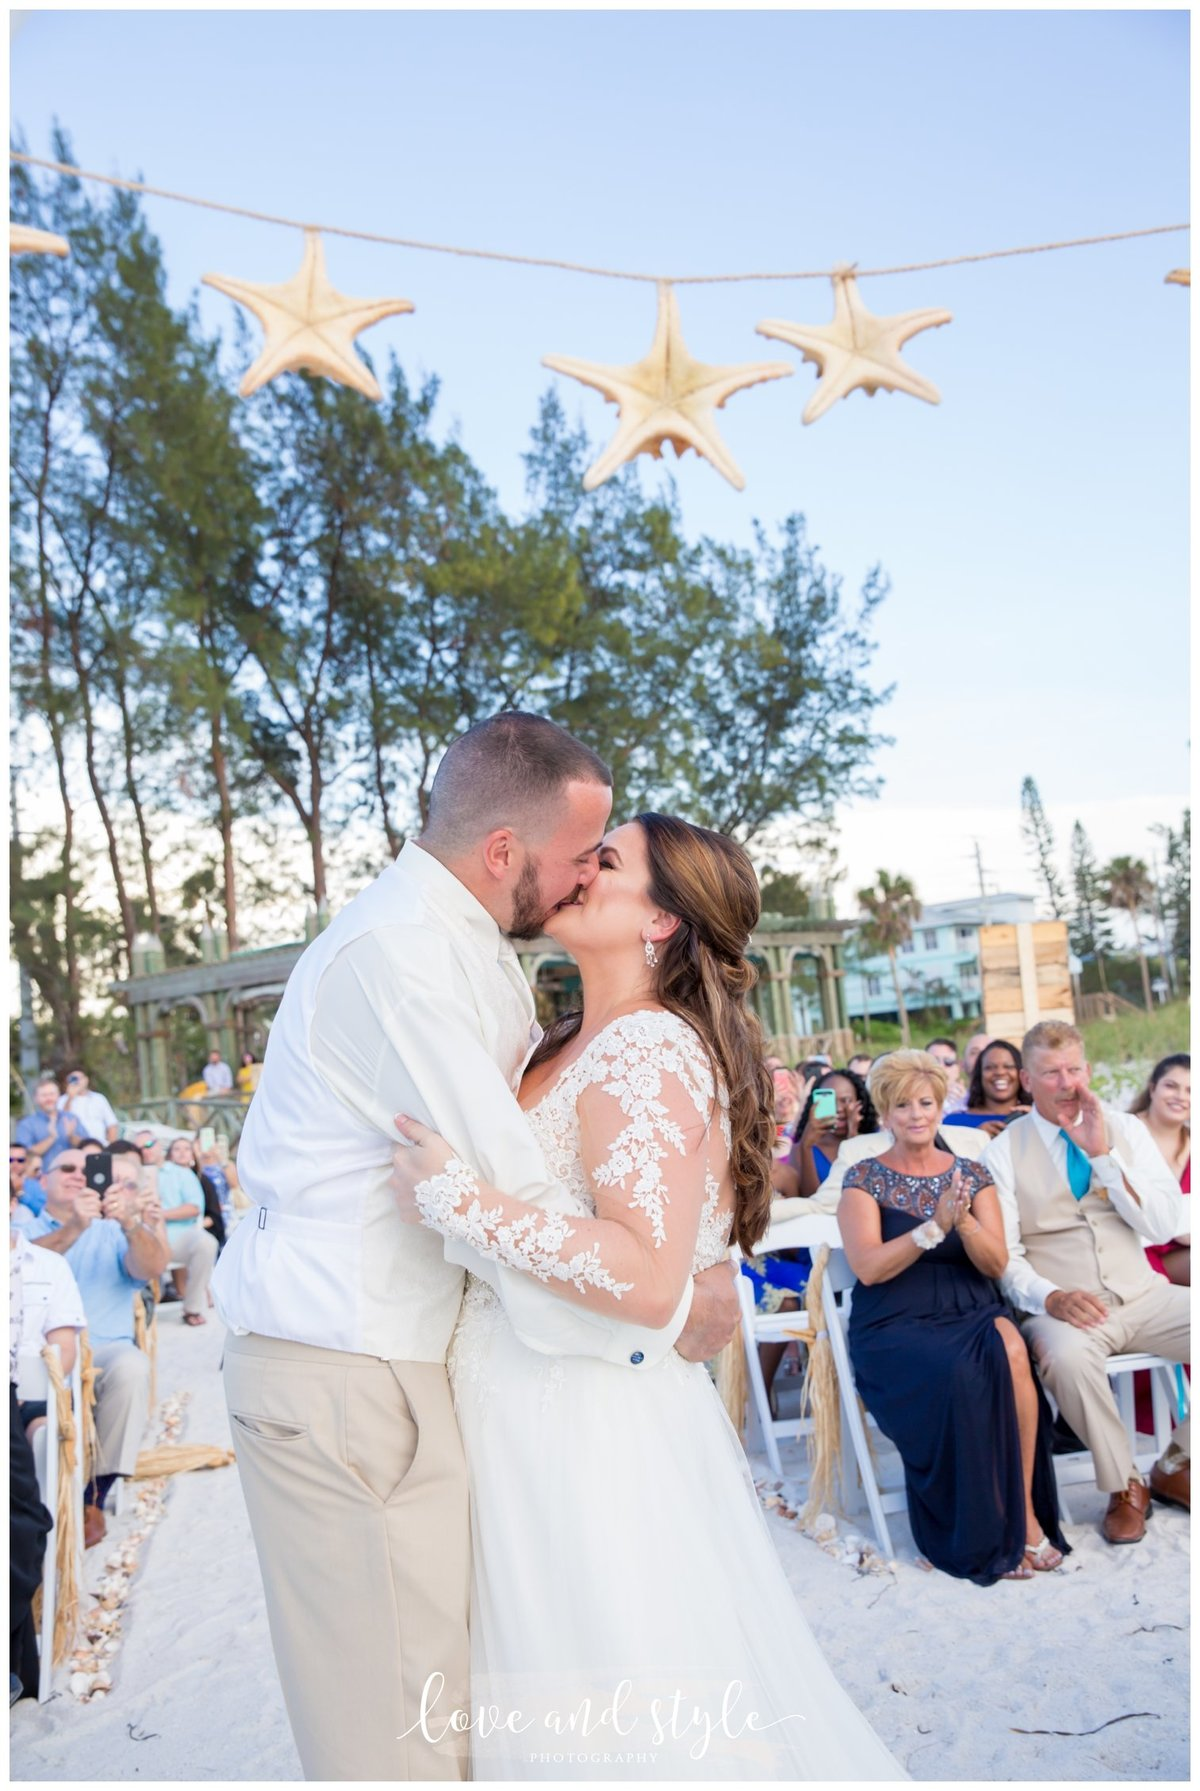 Anna Maria Island wedding photography ceremony with bride and groom kissing